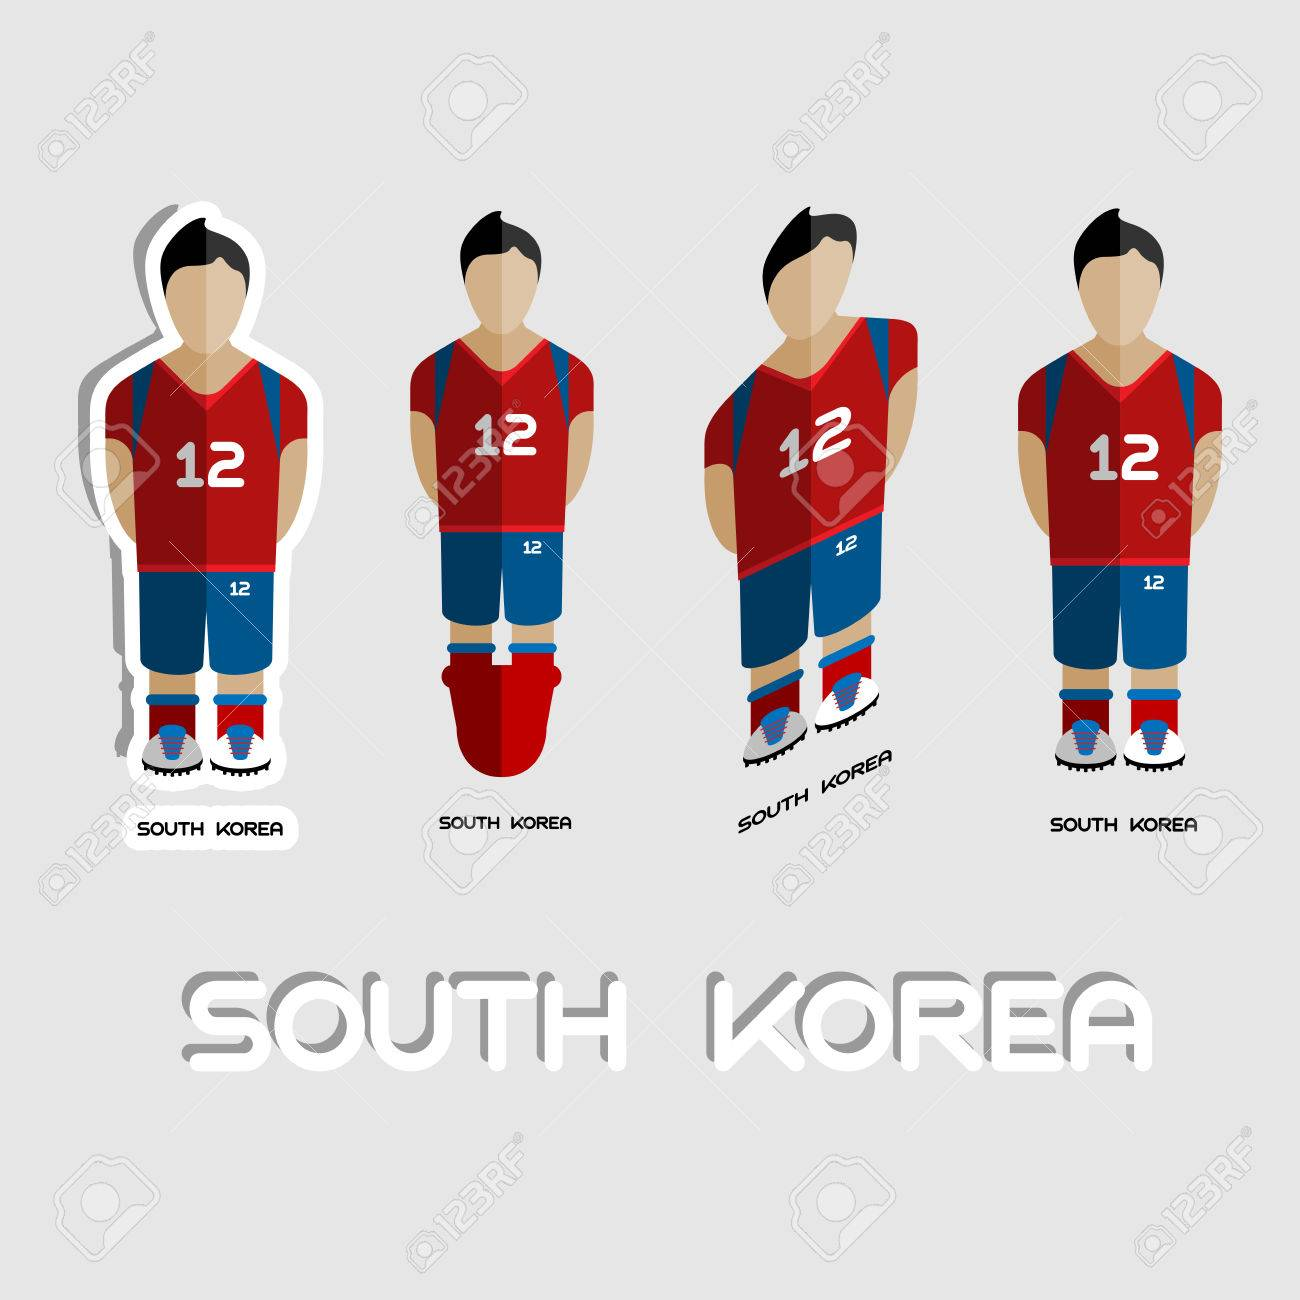 0a0952120 South Korea Soccer Team Sportswear Template. Front View of Outdoor Activity  Sportswear for Men and